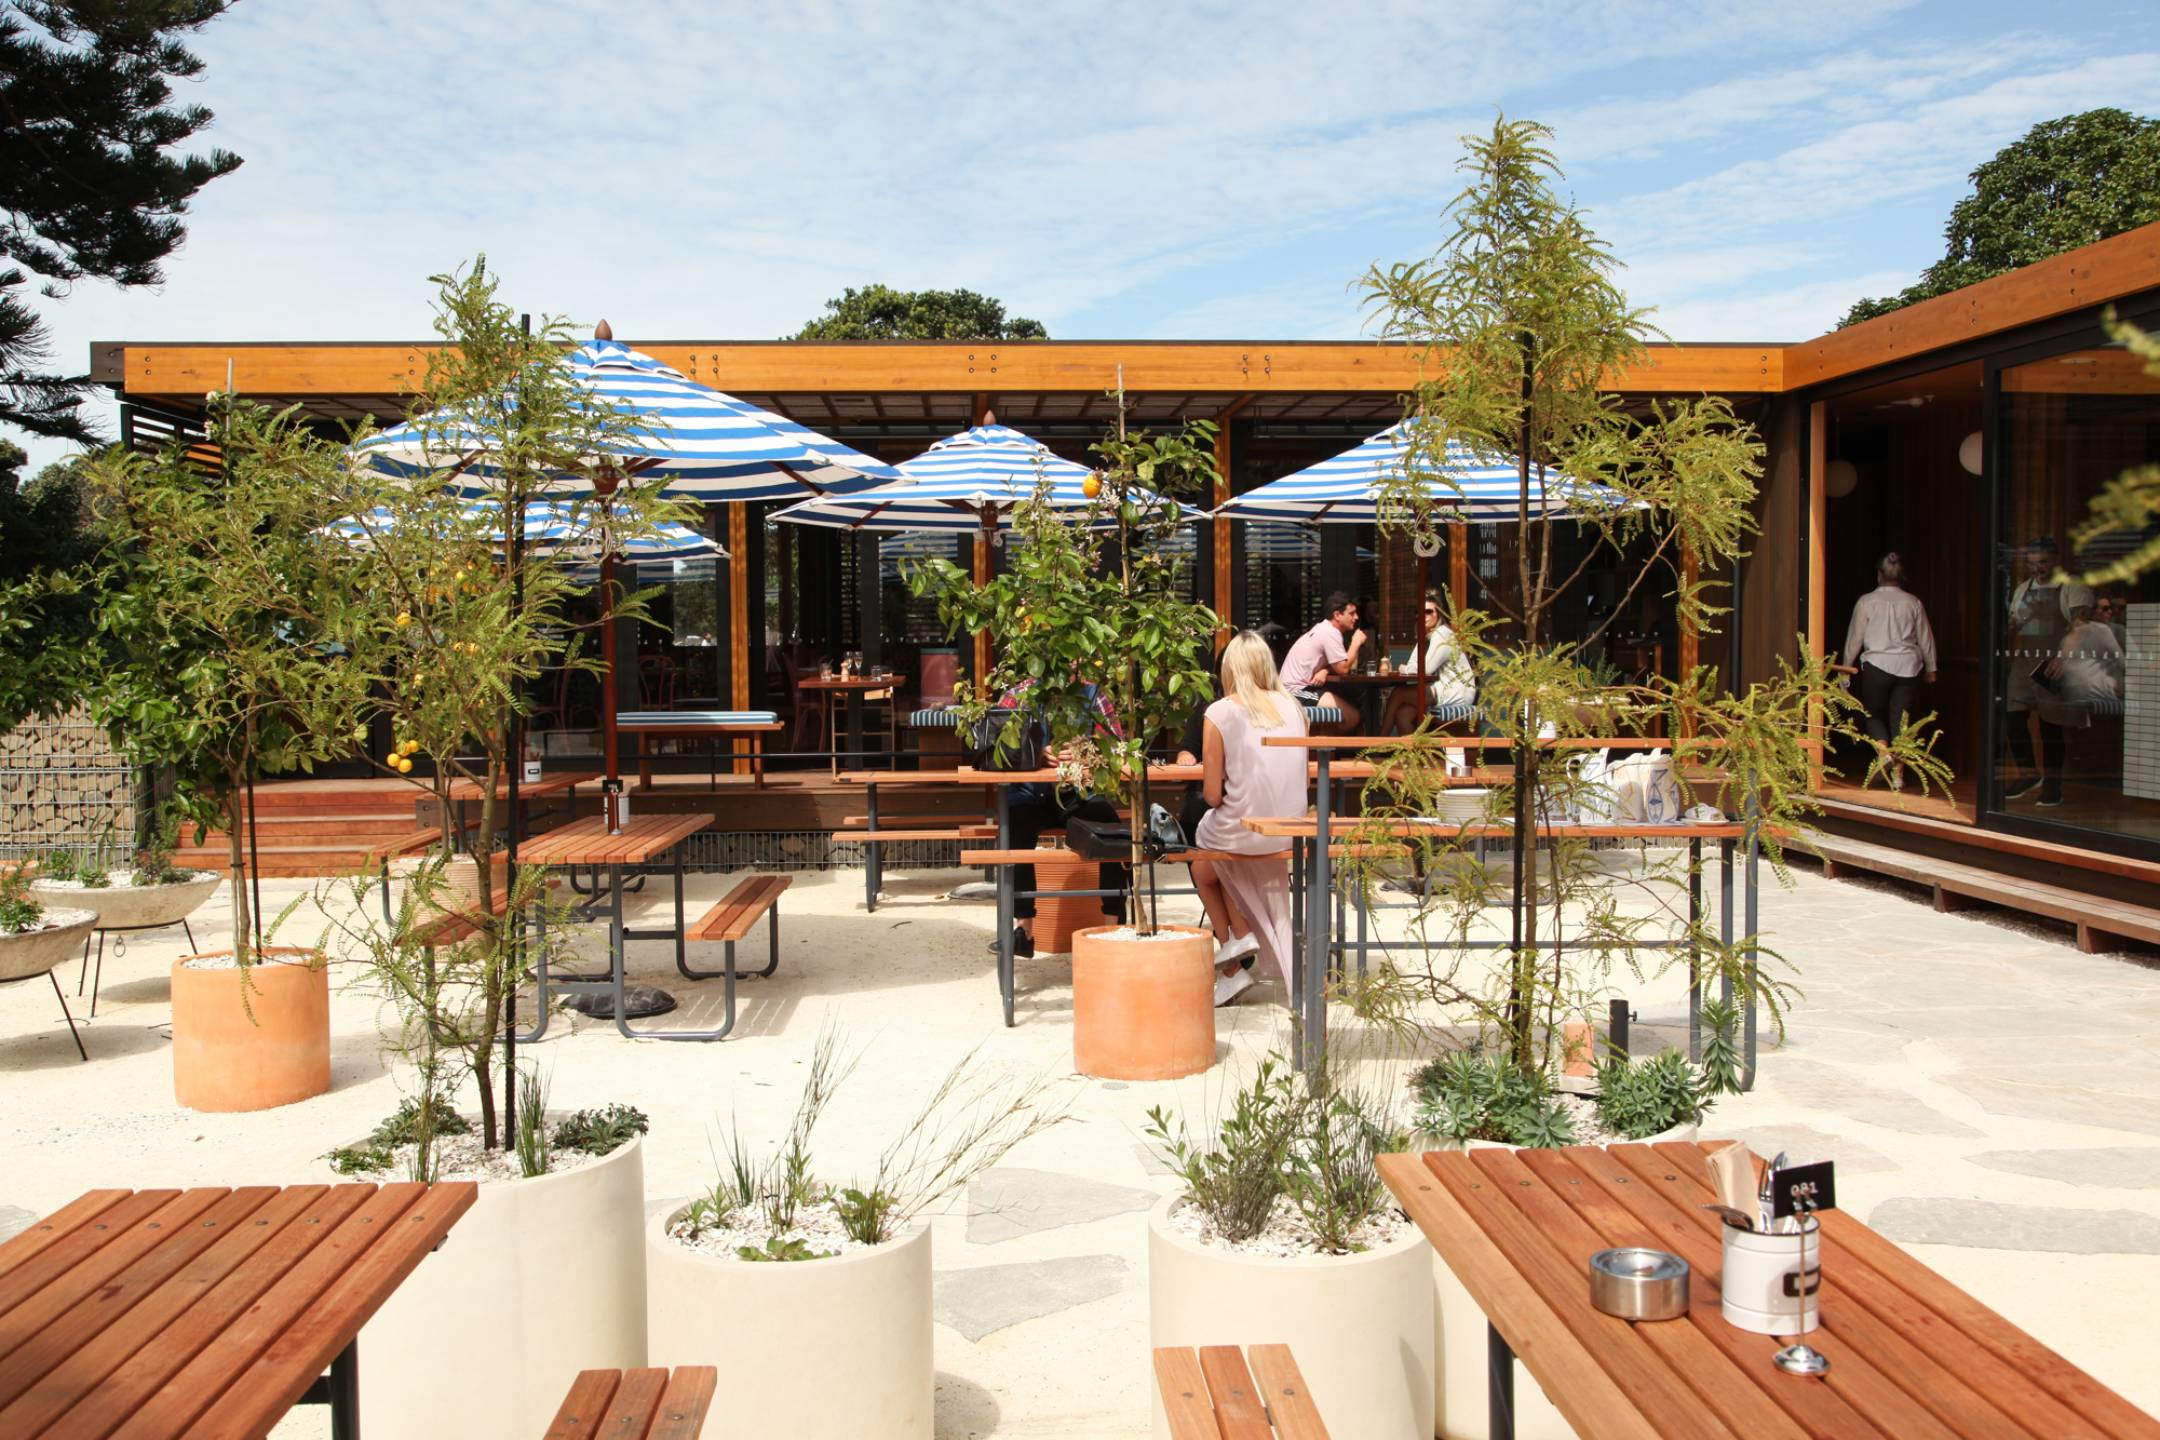 Mission Bay Pavilion restaurant by Herbst Architects